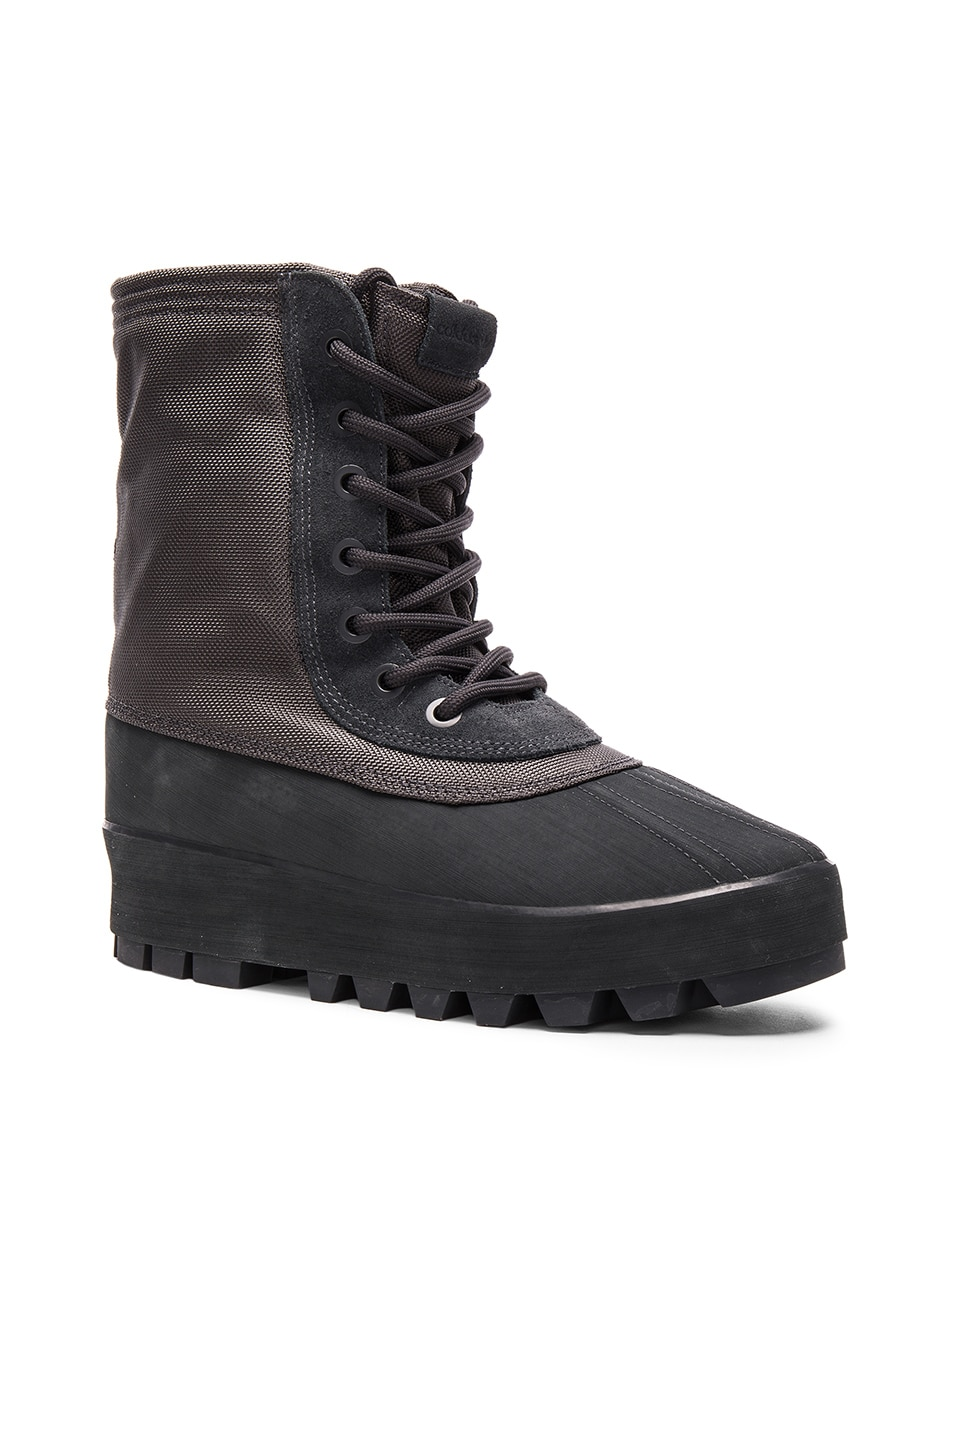 kanye west adidas clothing line release date yeezy boost 950